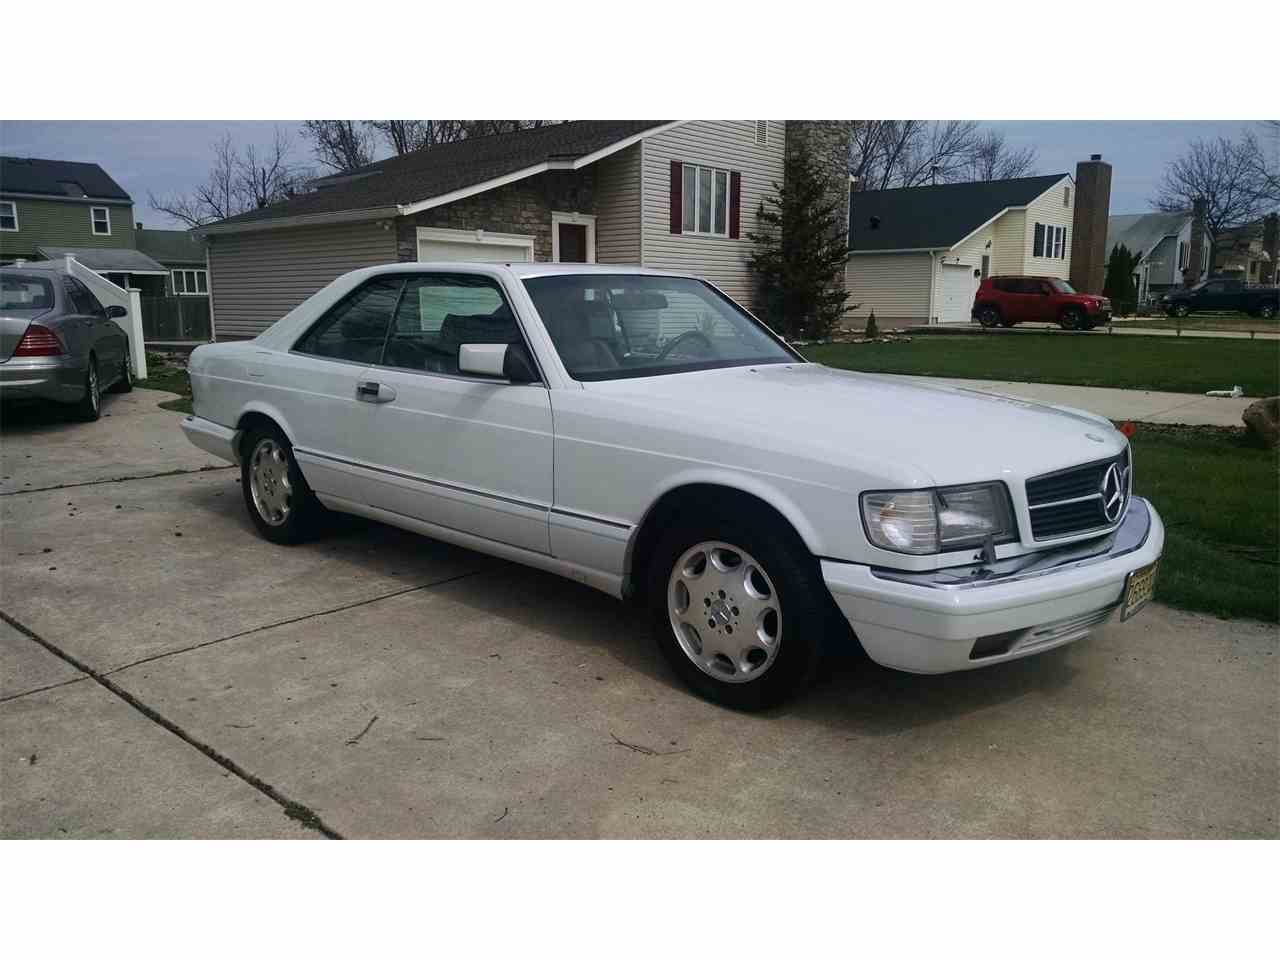 1990 mercedes benz 560sec for sale cc for Mercedes benz for sale in nj